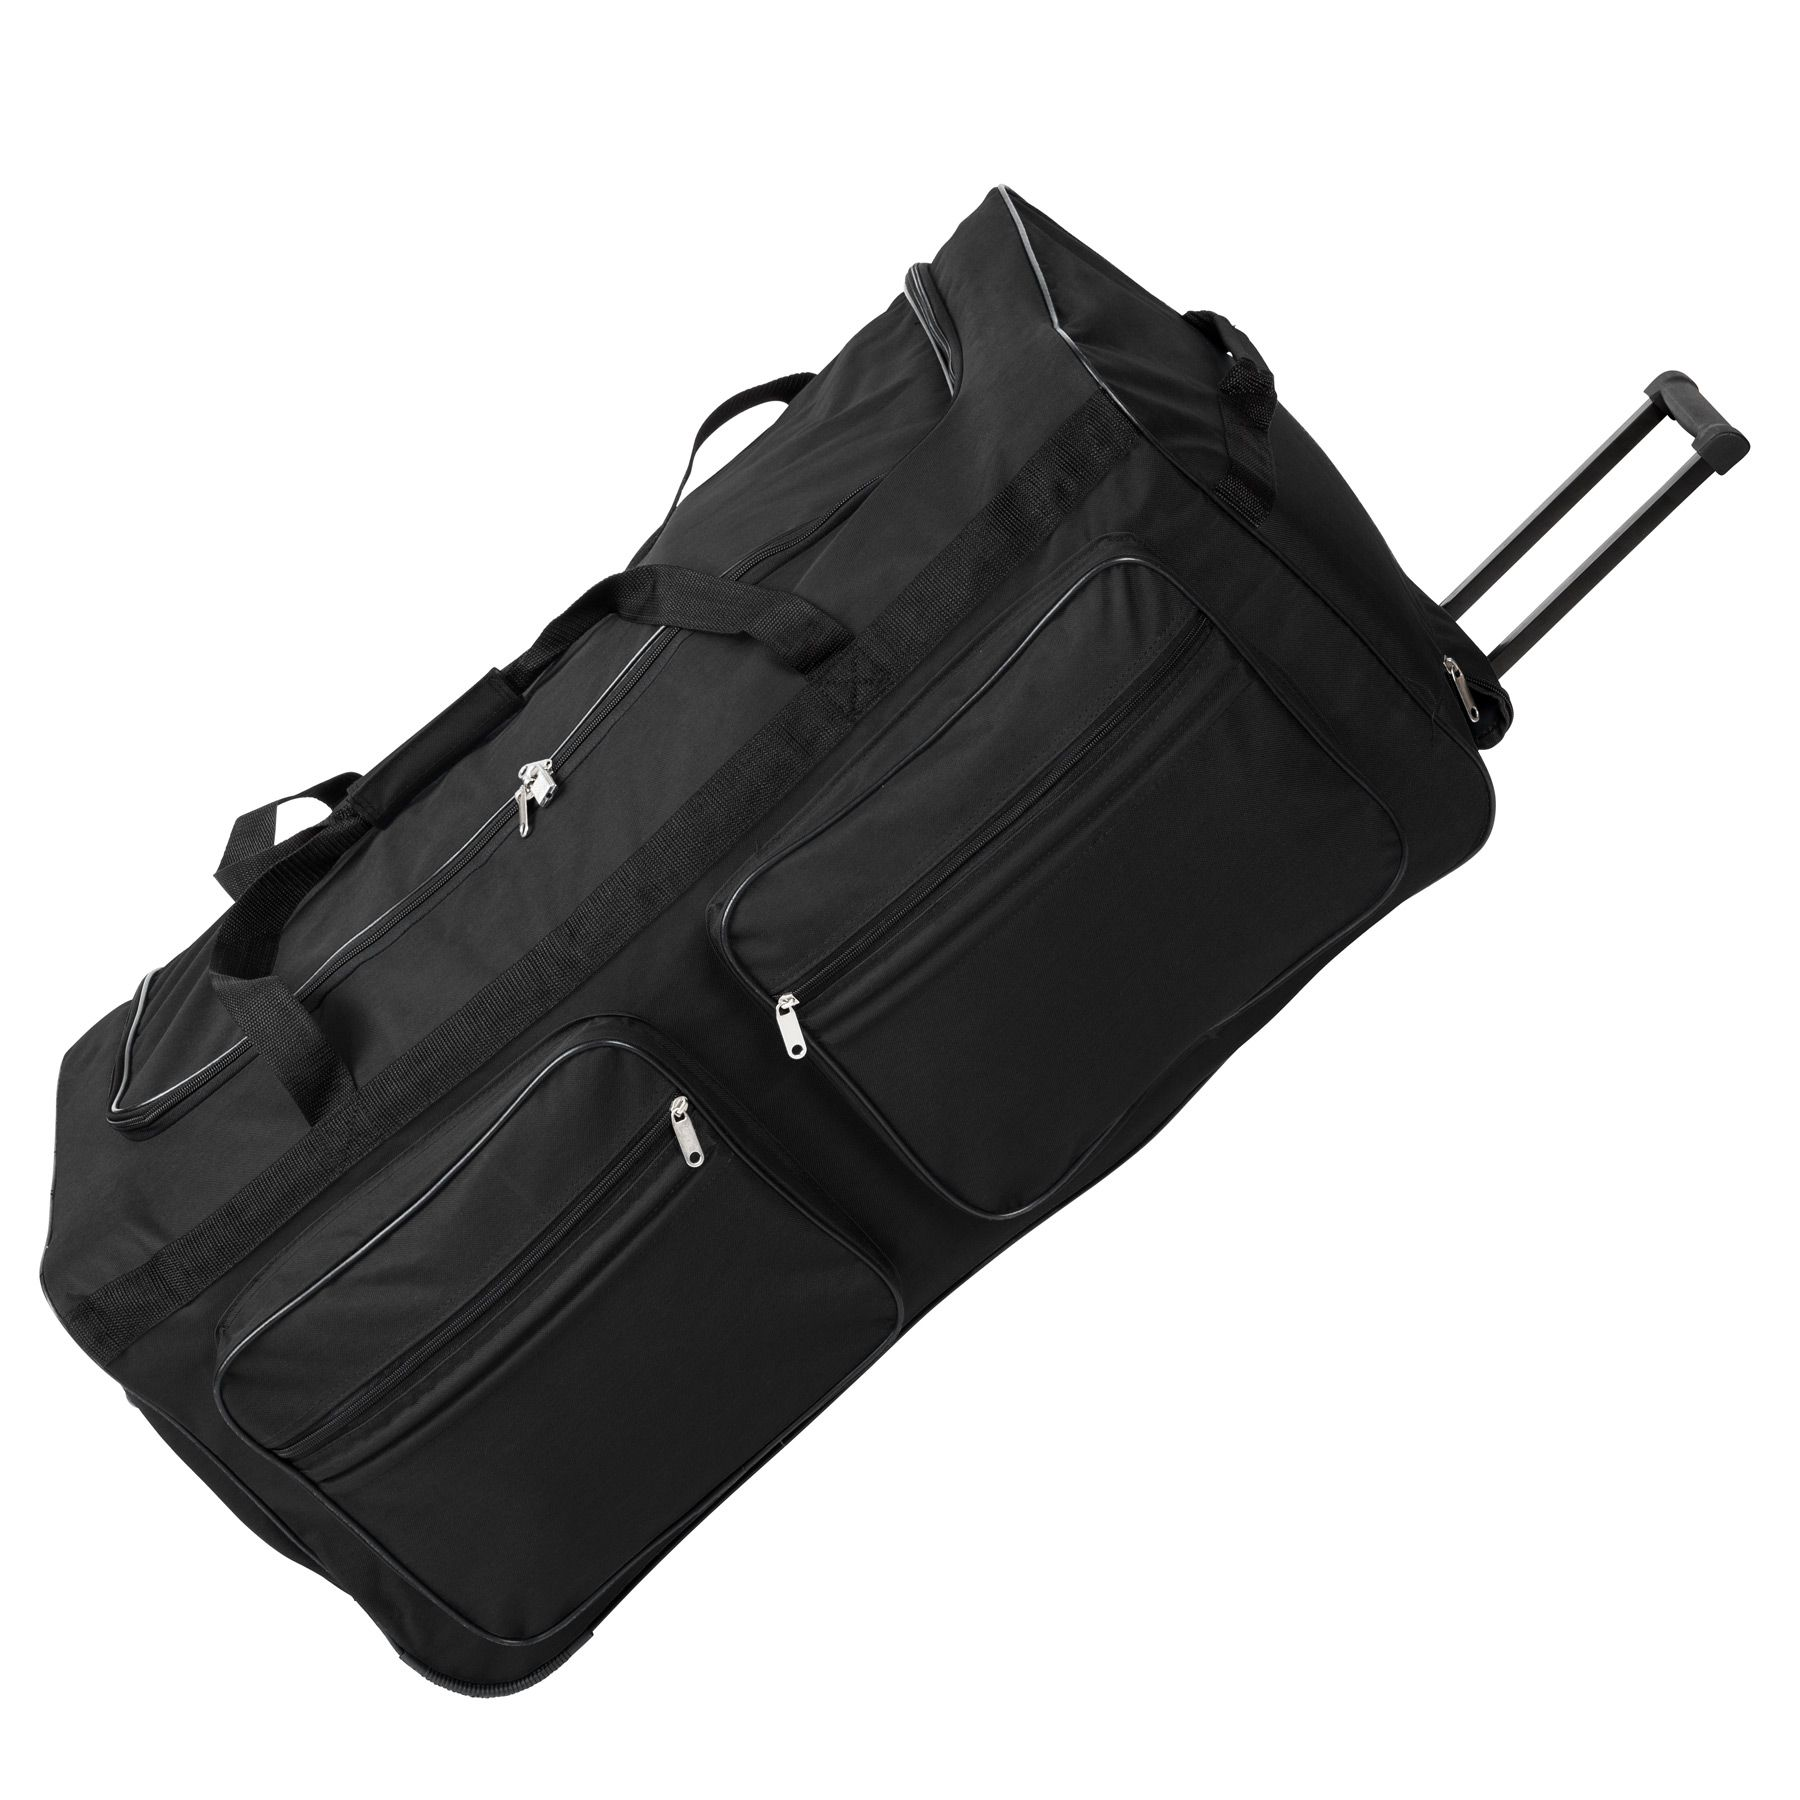 sac de voyage xxl valise trolley l g re sport bagage roulettes 160 litres noir ebay. Black Bedroom Furniture Sets. Home Design Ideas